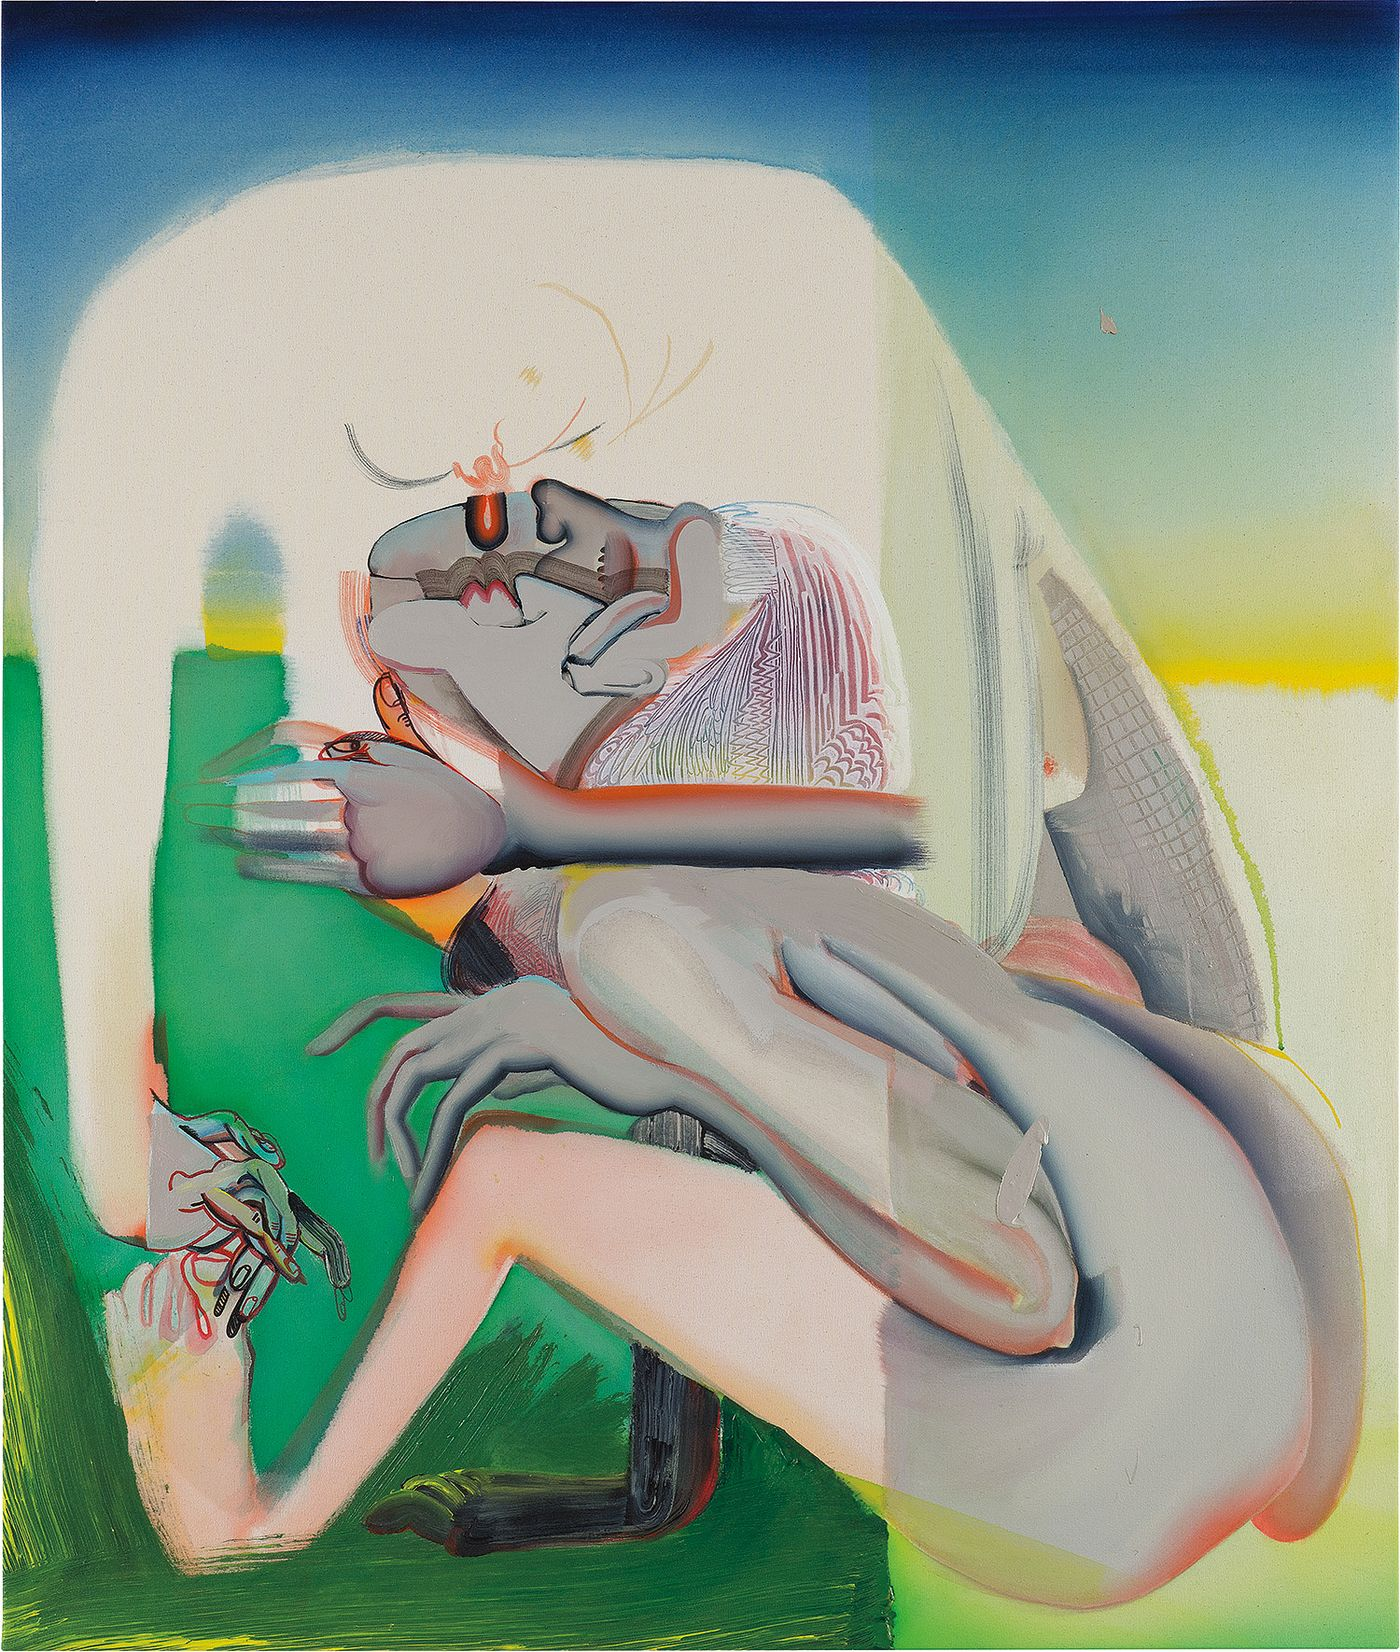 Having found critical and commercial success extremely early in her career, the American artist uses painting as a way to explore her multi-hyphenate identity.